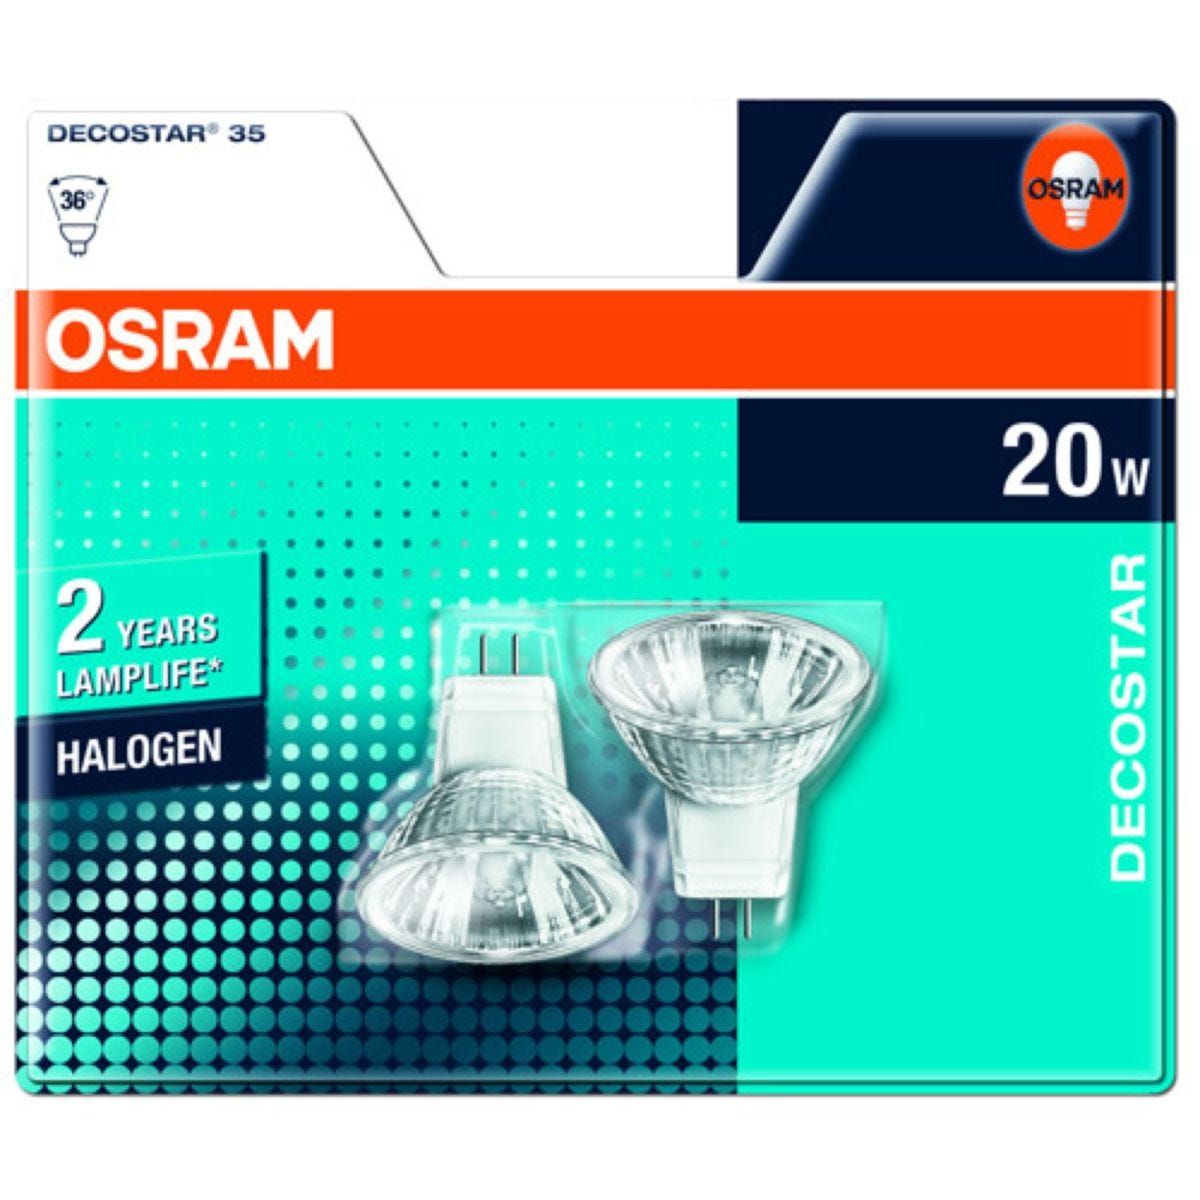 Osram 20W GU4 Eco Halogen Pin Base Light Bulbs - 2 Pack